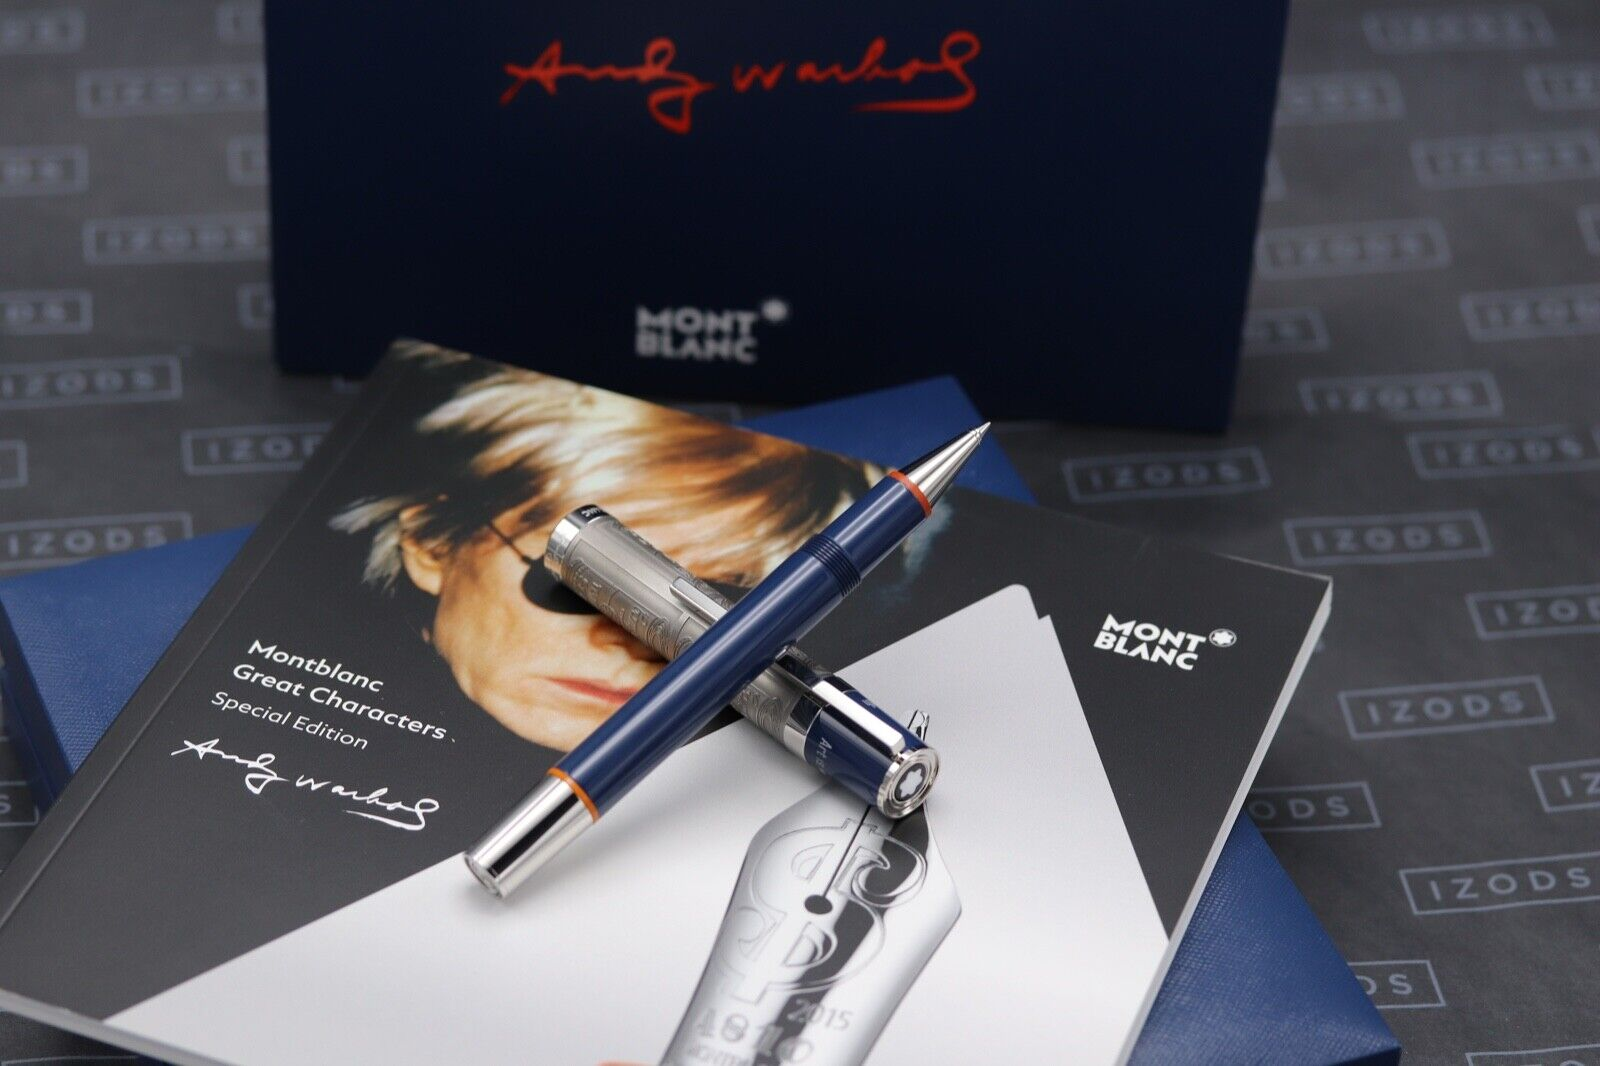 Montblanc Great Characters Andy Warhol Special Edition Rollerball Pen - UNUSED